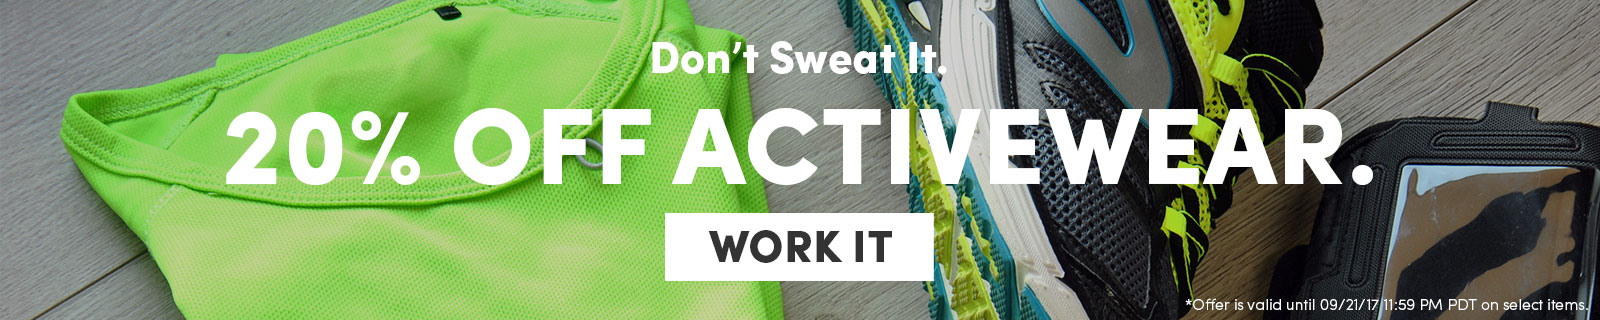 Don't Sweat It. 20% Off Activewear. | Work It